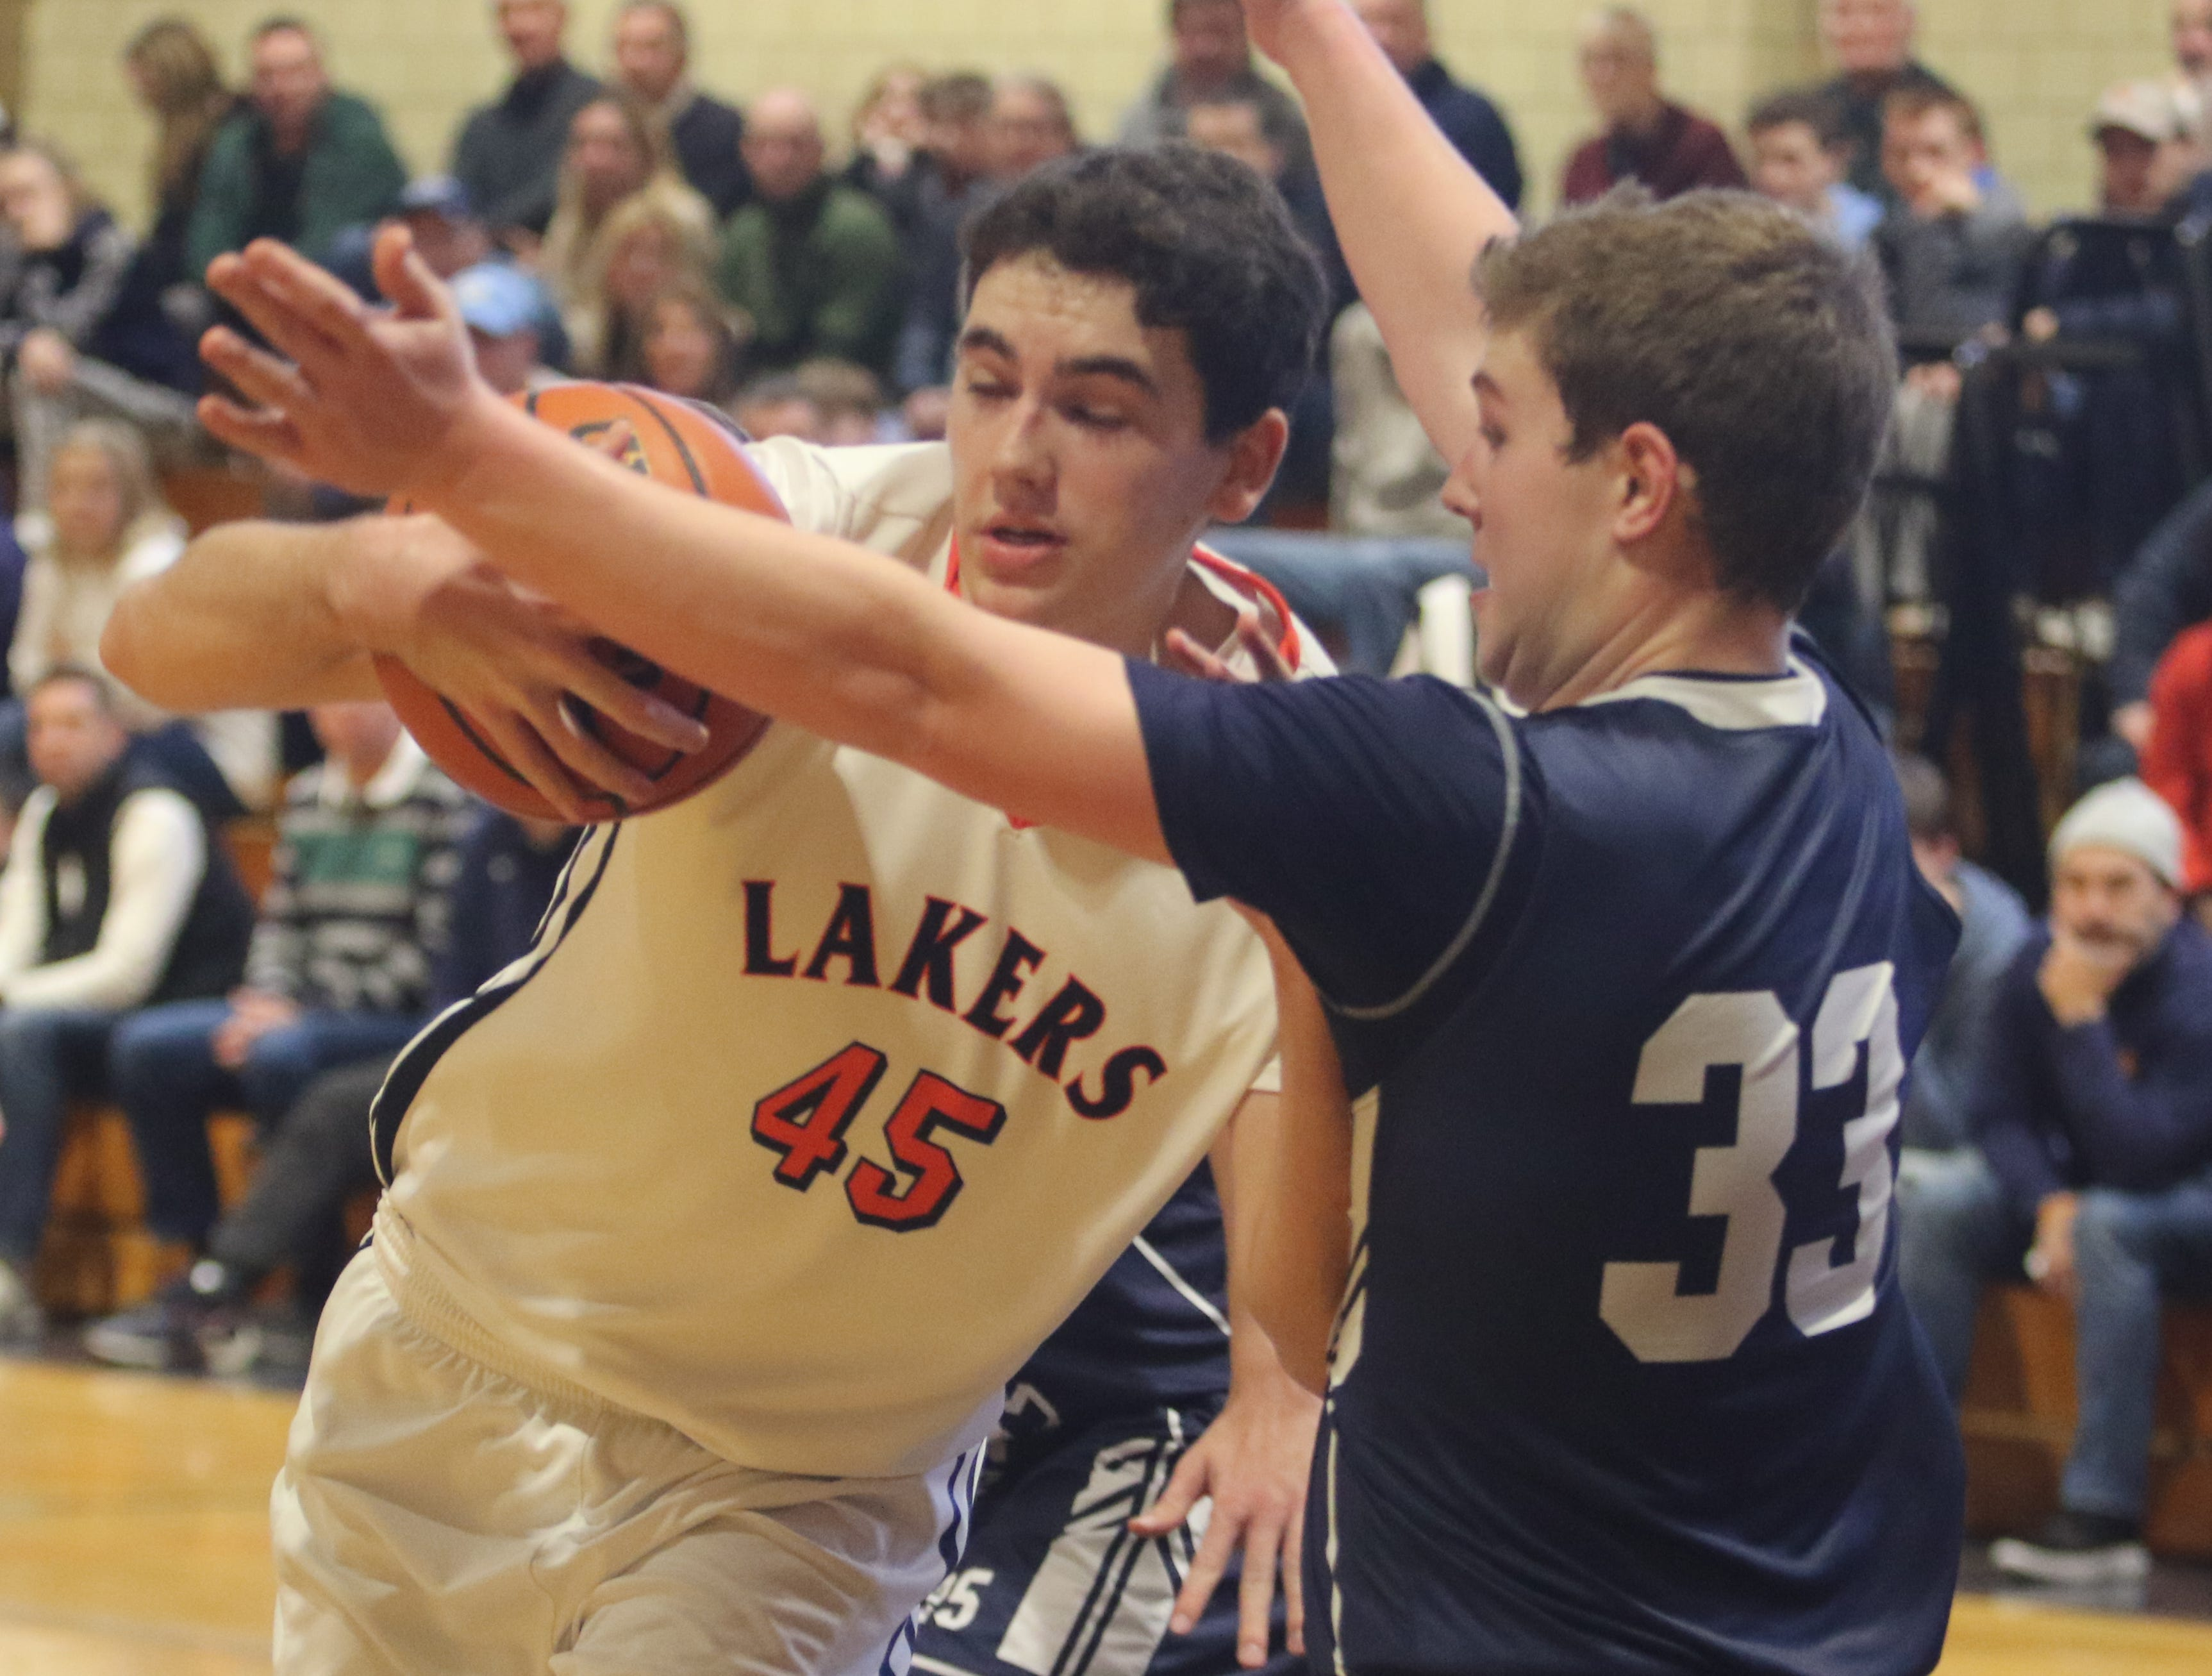 Spencer Myler of Mt. Lakes drives on Andrew Bergman of Chatham late in the game.